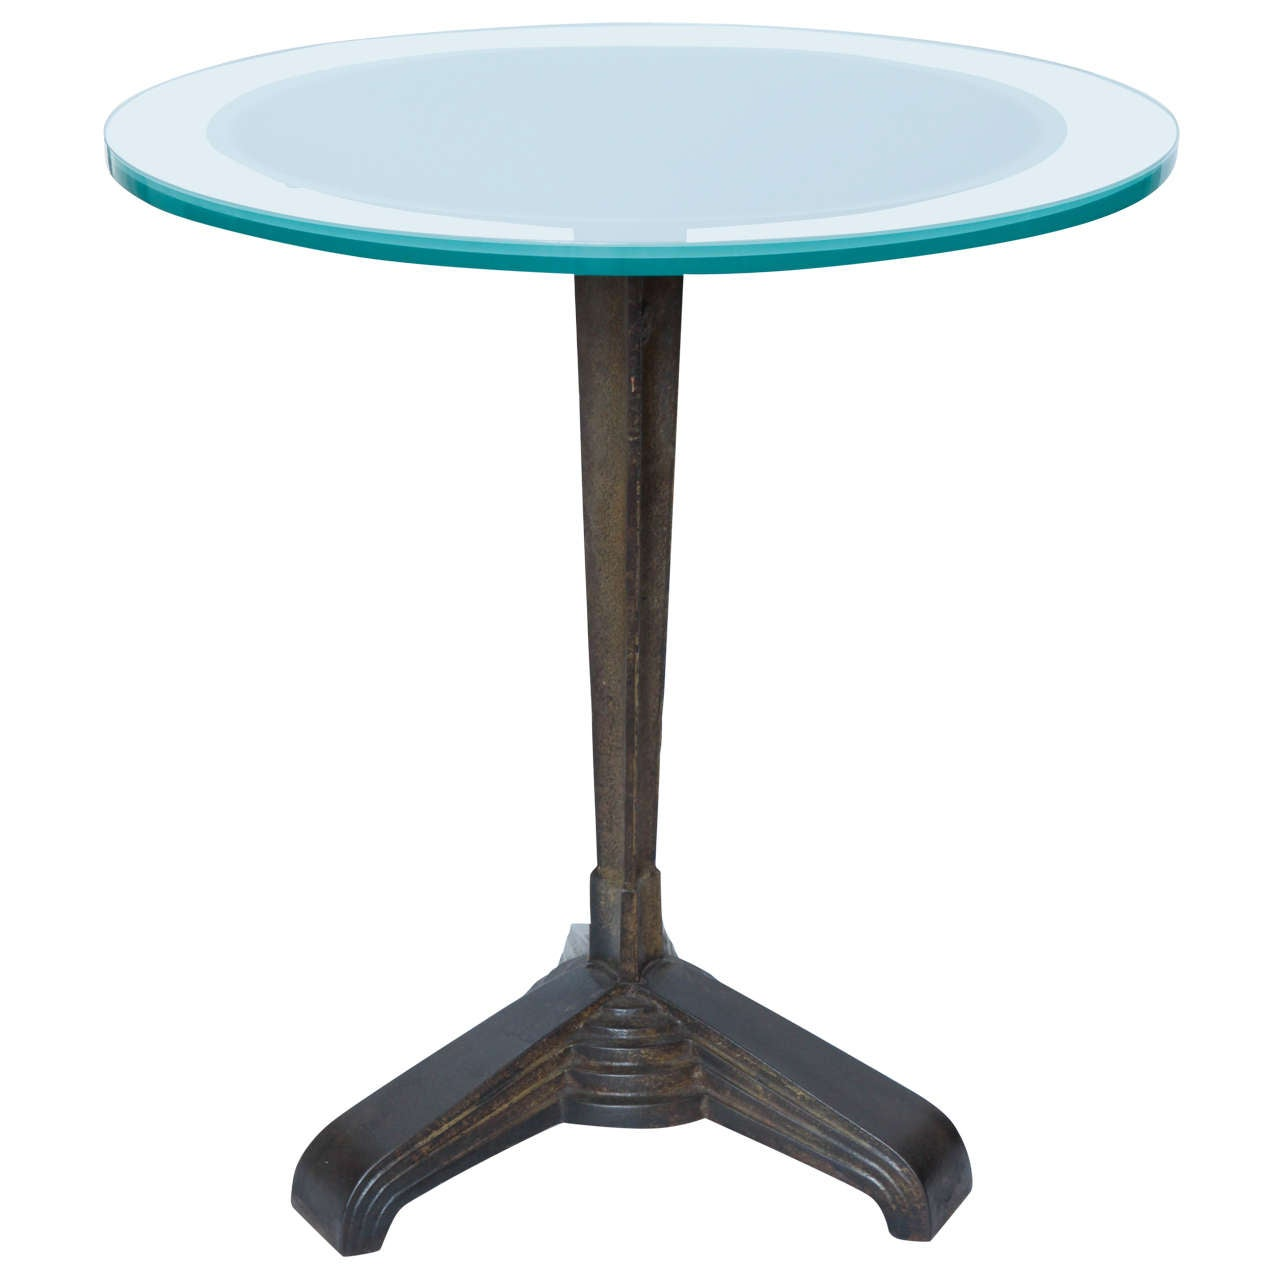 American 1920s Modernist Art Deco Table For Sale